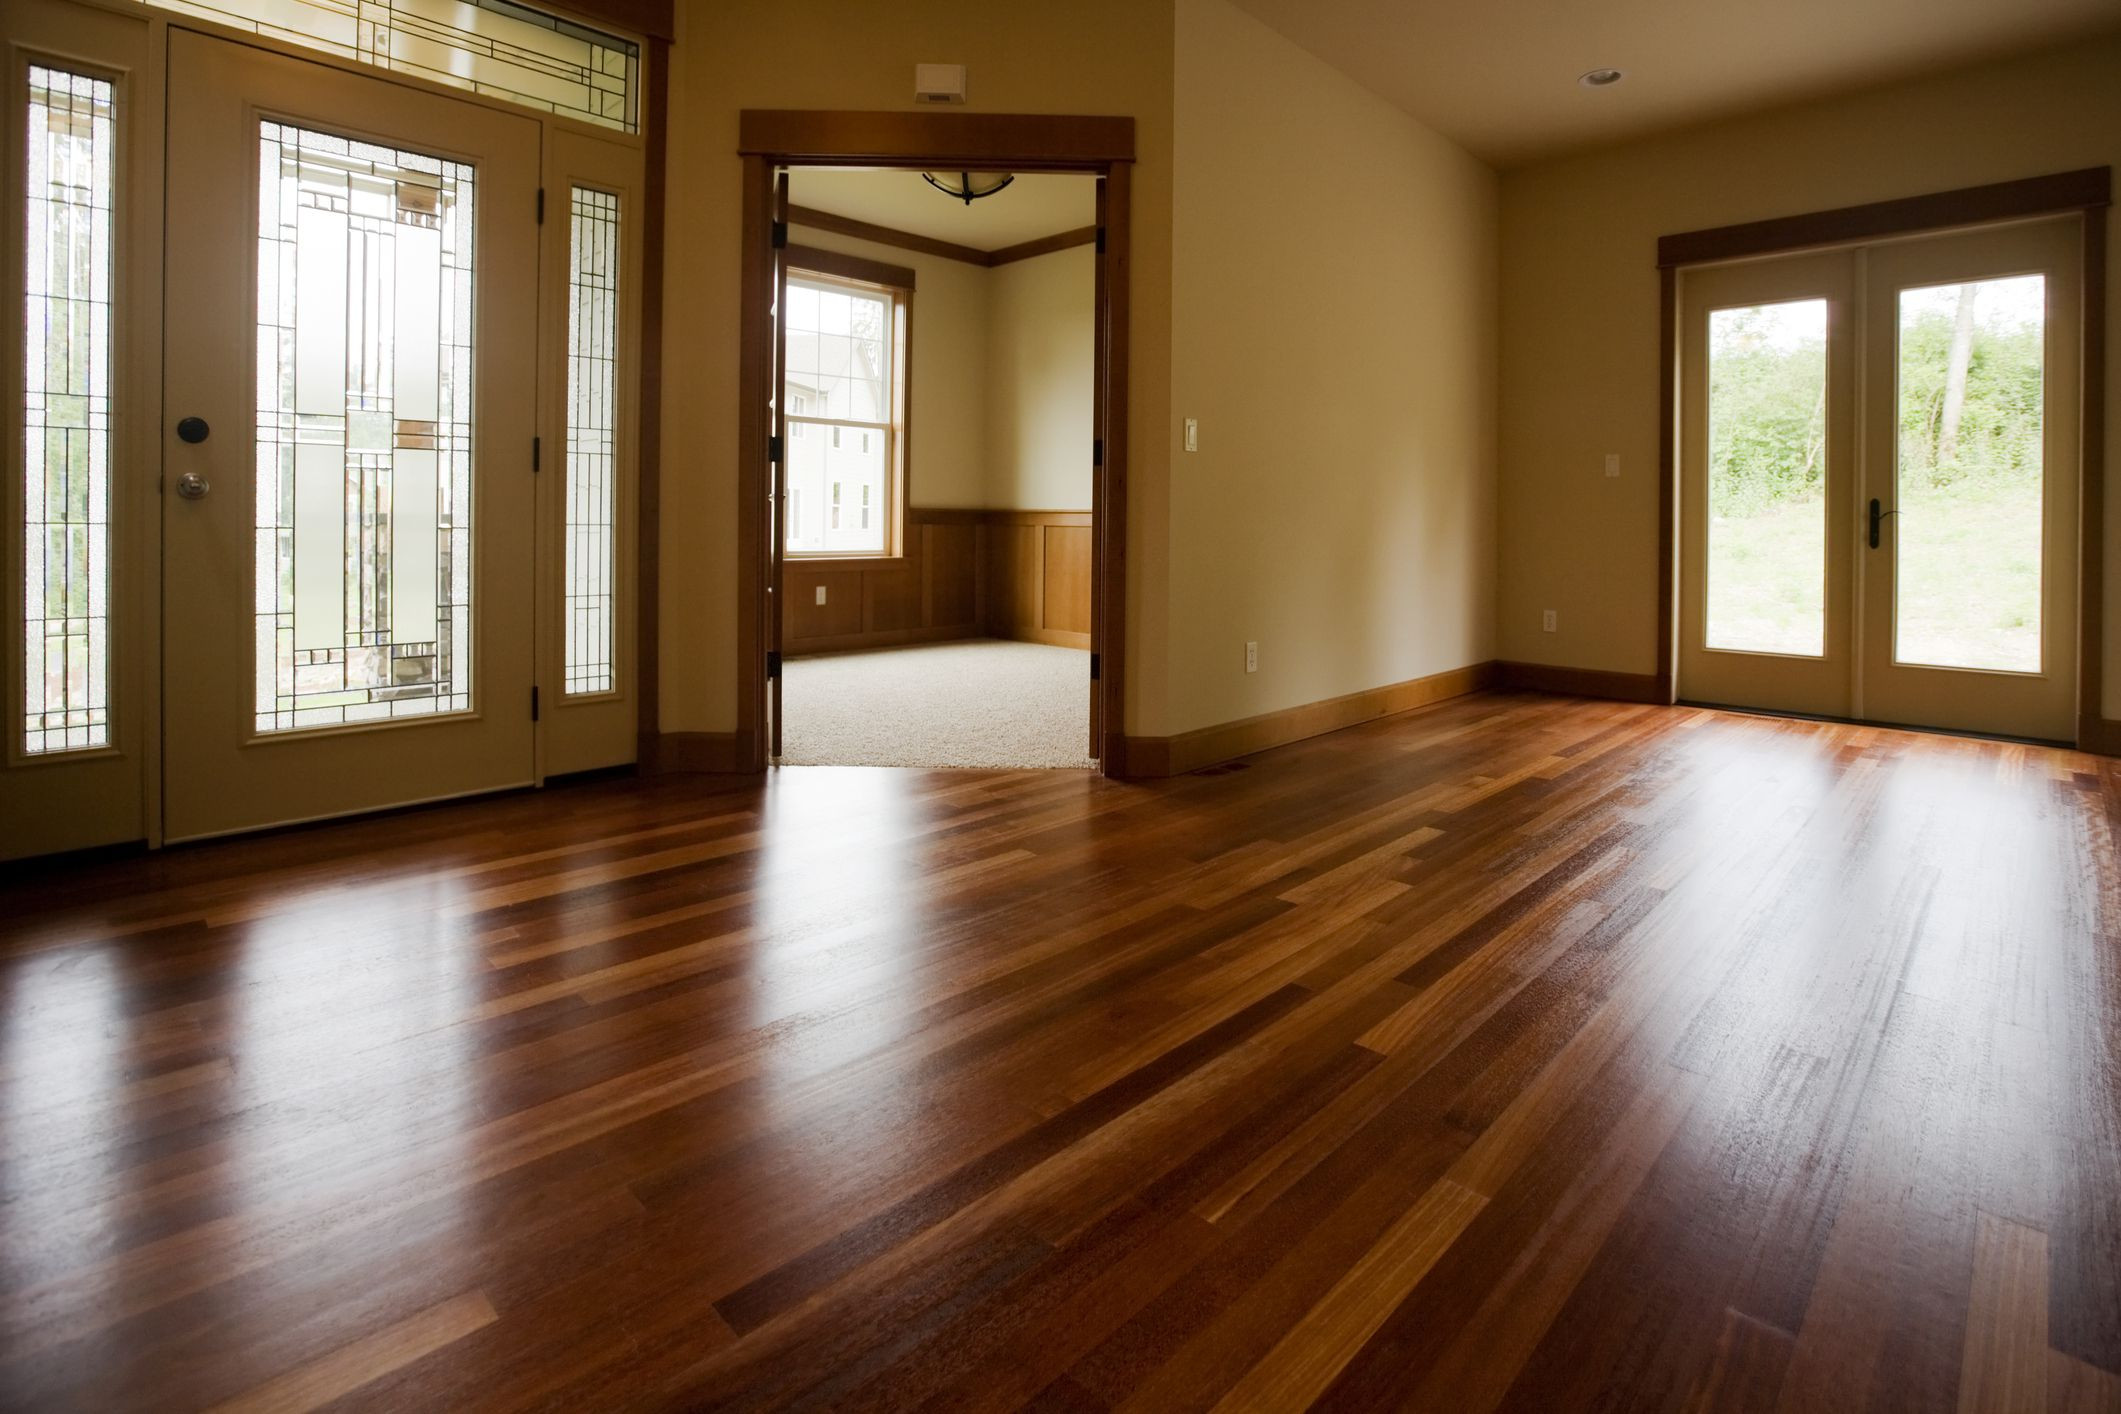 4 hickory hardwood flooring of types of hardwood flooring buyers guide with regard to gettyimages 157332889 5886d8383df78c2ccd65d4e1